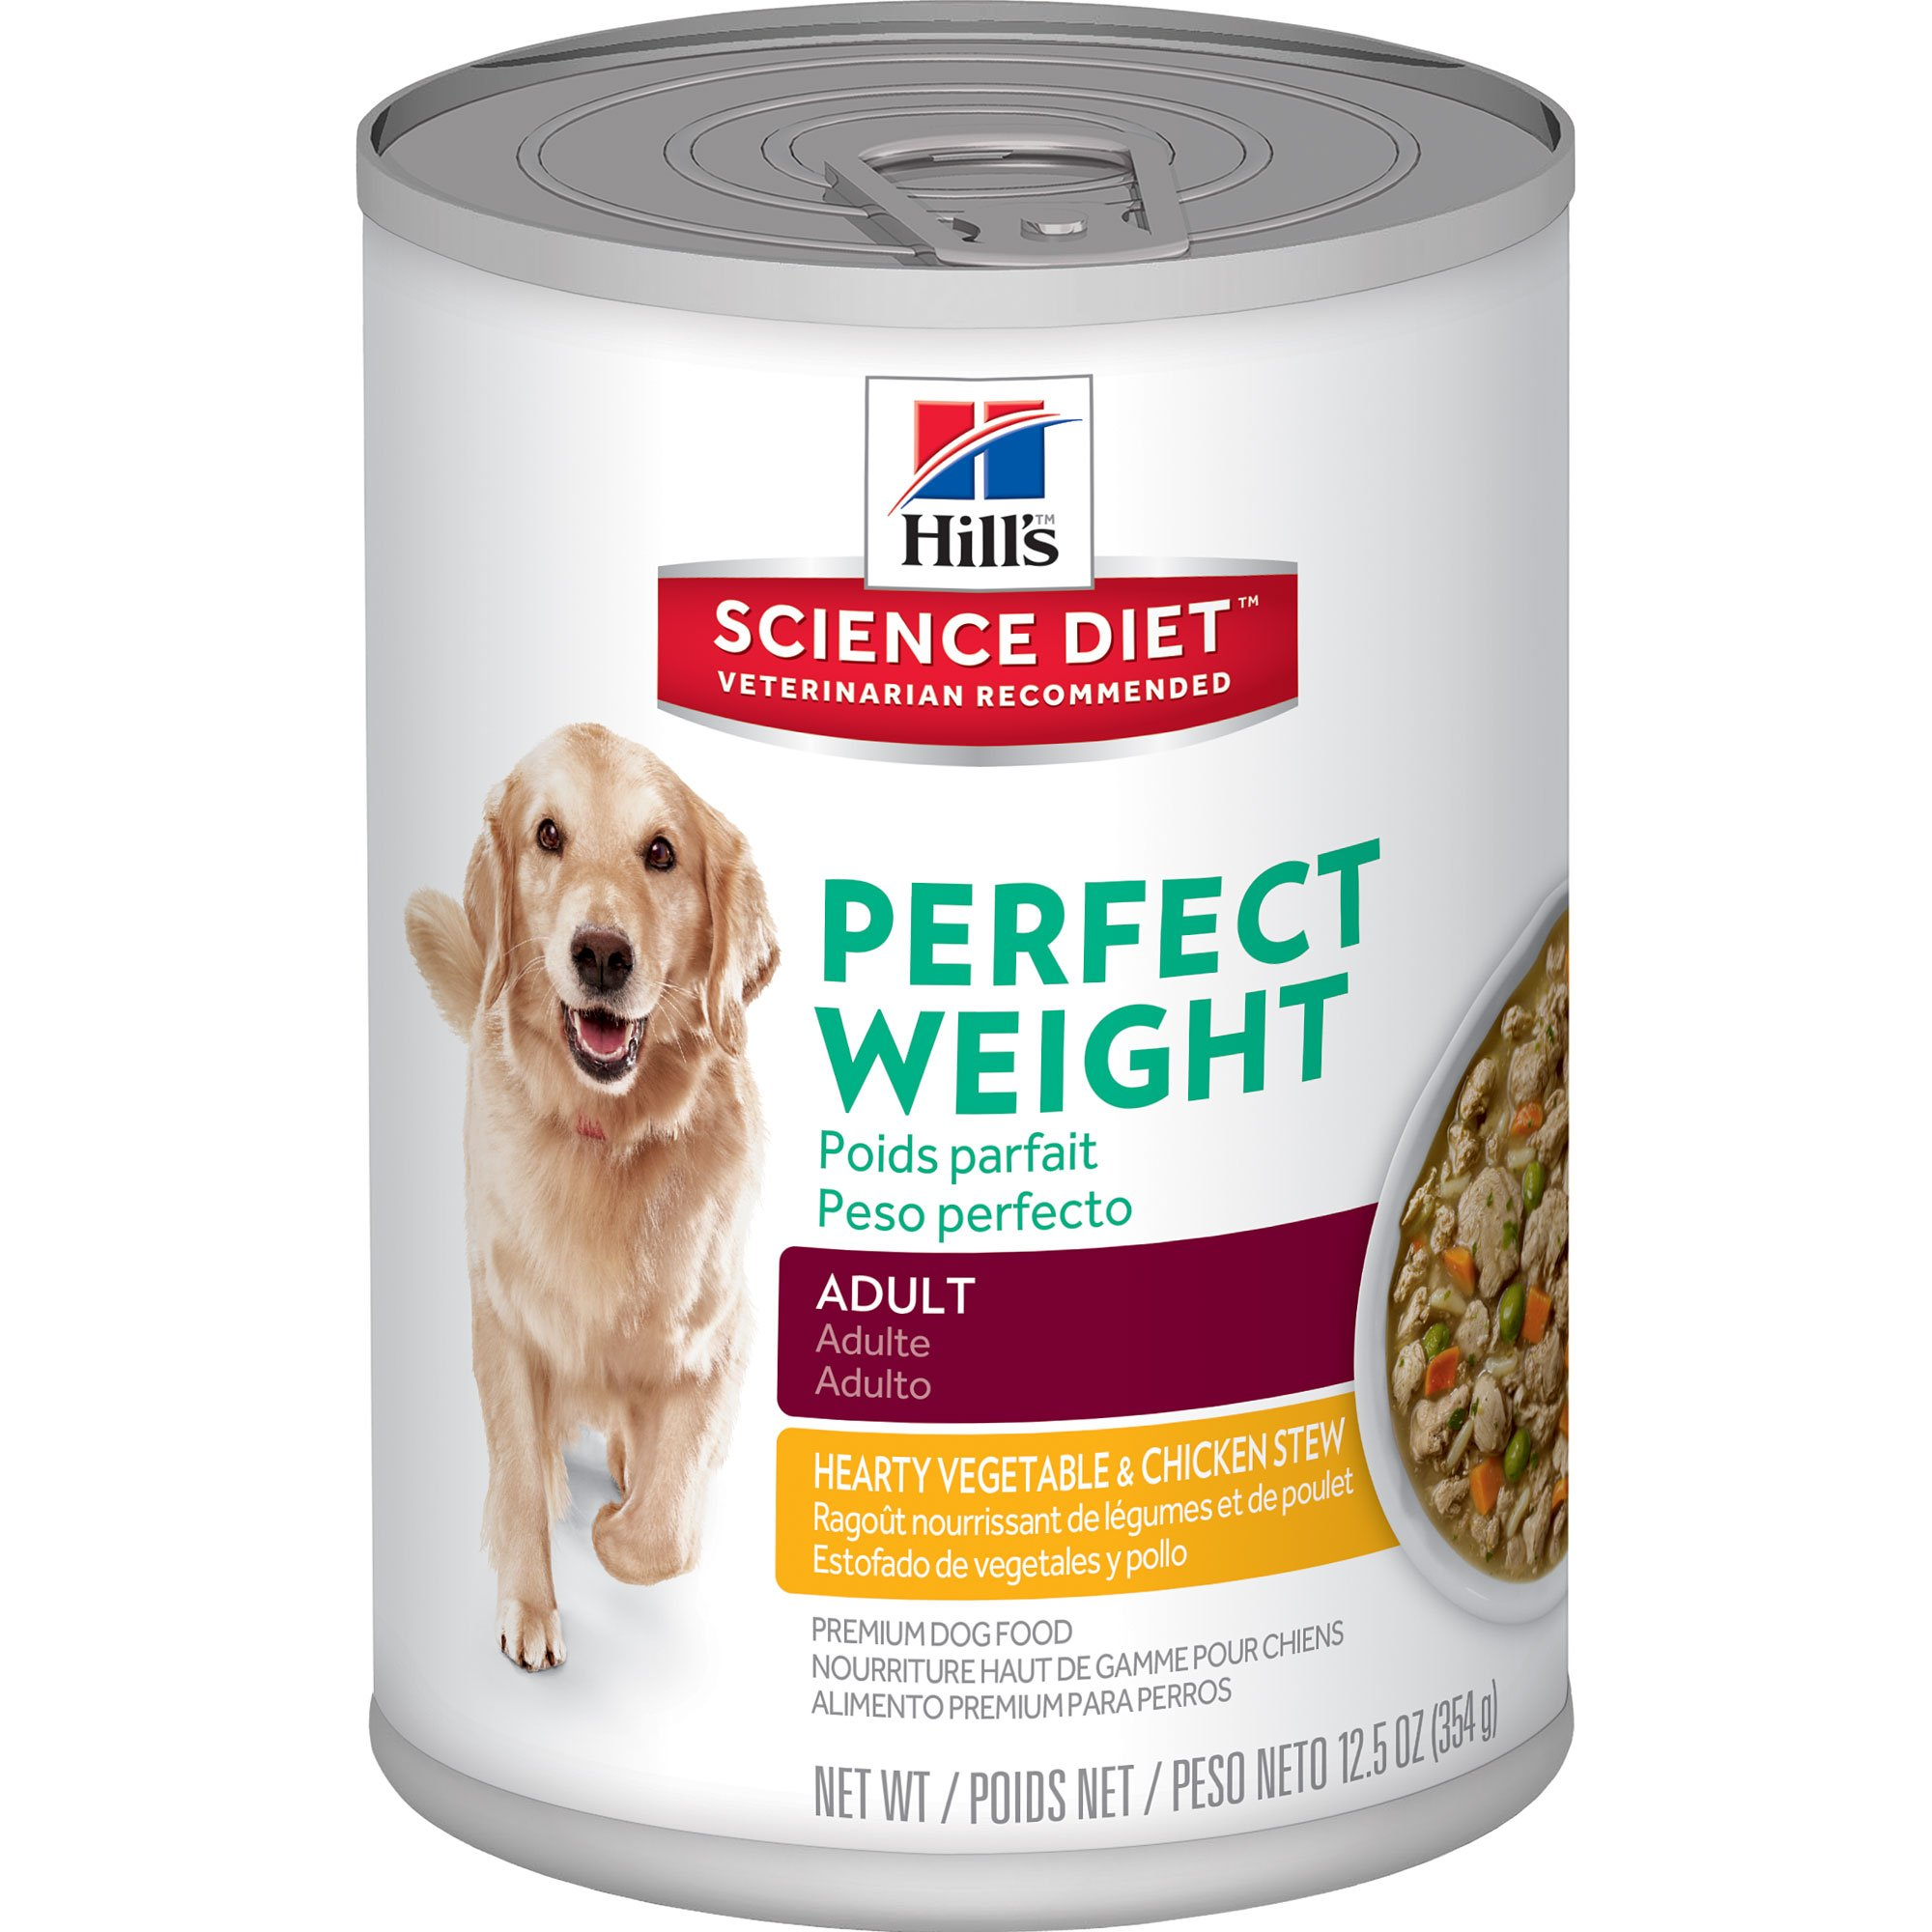 Hill's Science Diet Adult Perfect Weight Wet Dog Food, Hearty Vegetable & Chicken Stew Canned Dog Food for healthy weight and weight management, 12.5 oz, 12 Pack